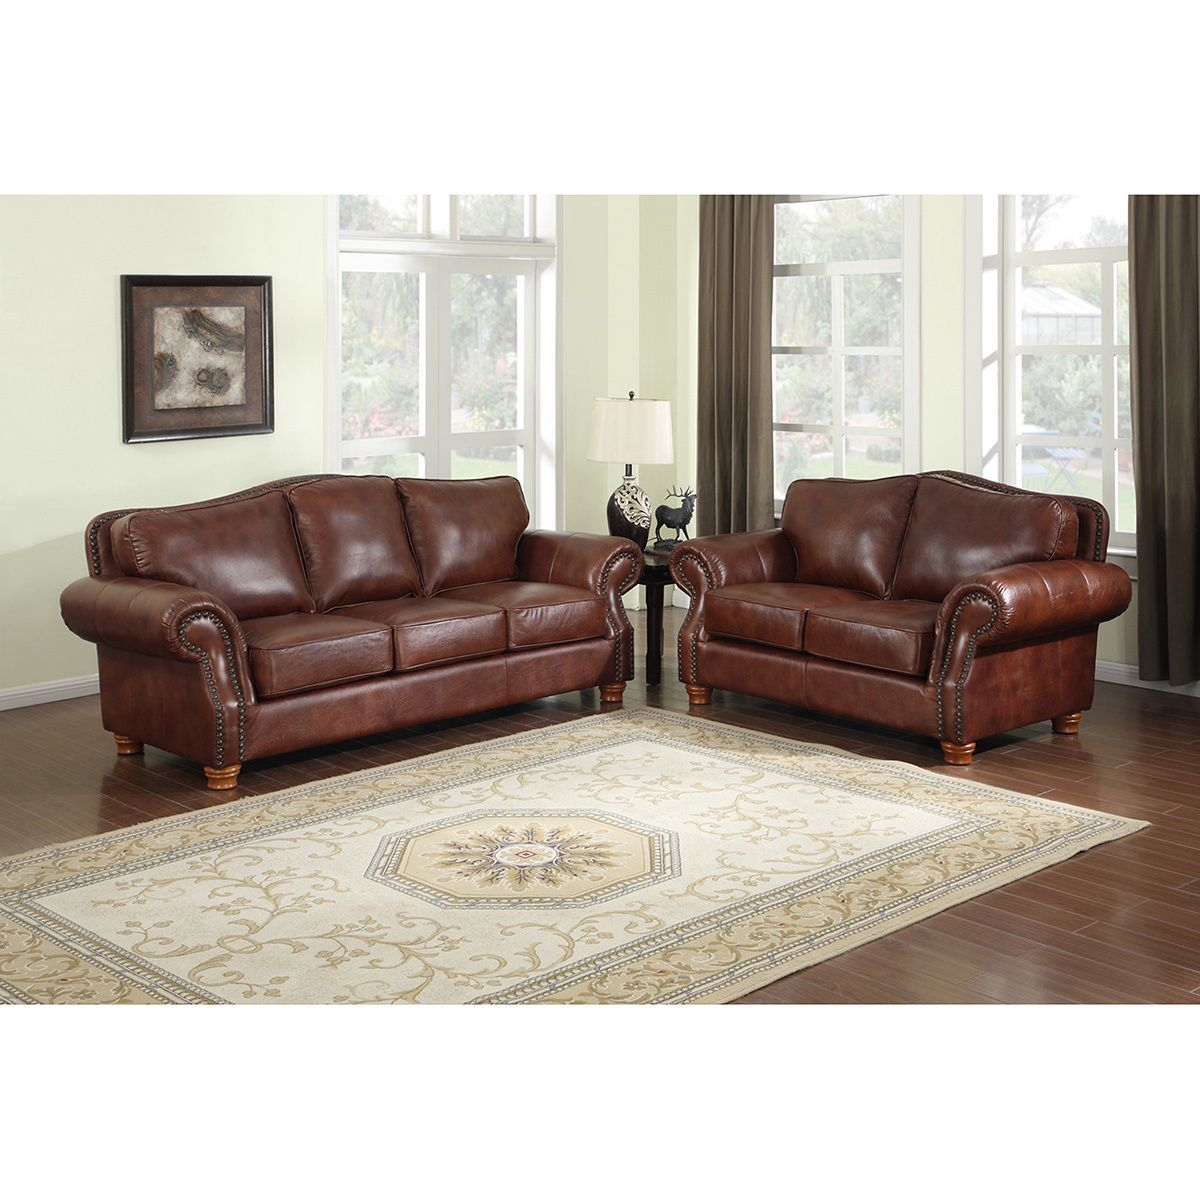 brandon distressed whiskey italian leather sofa and loveseat brown